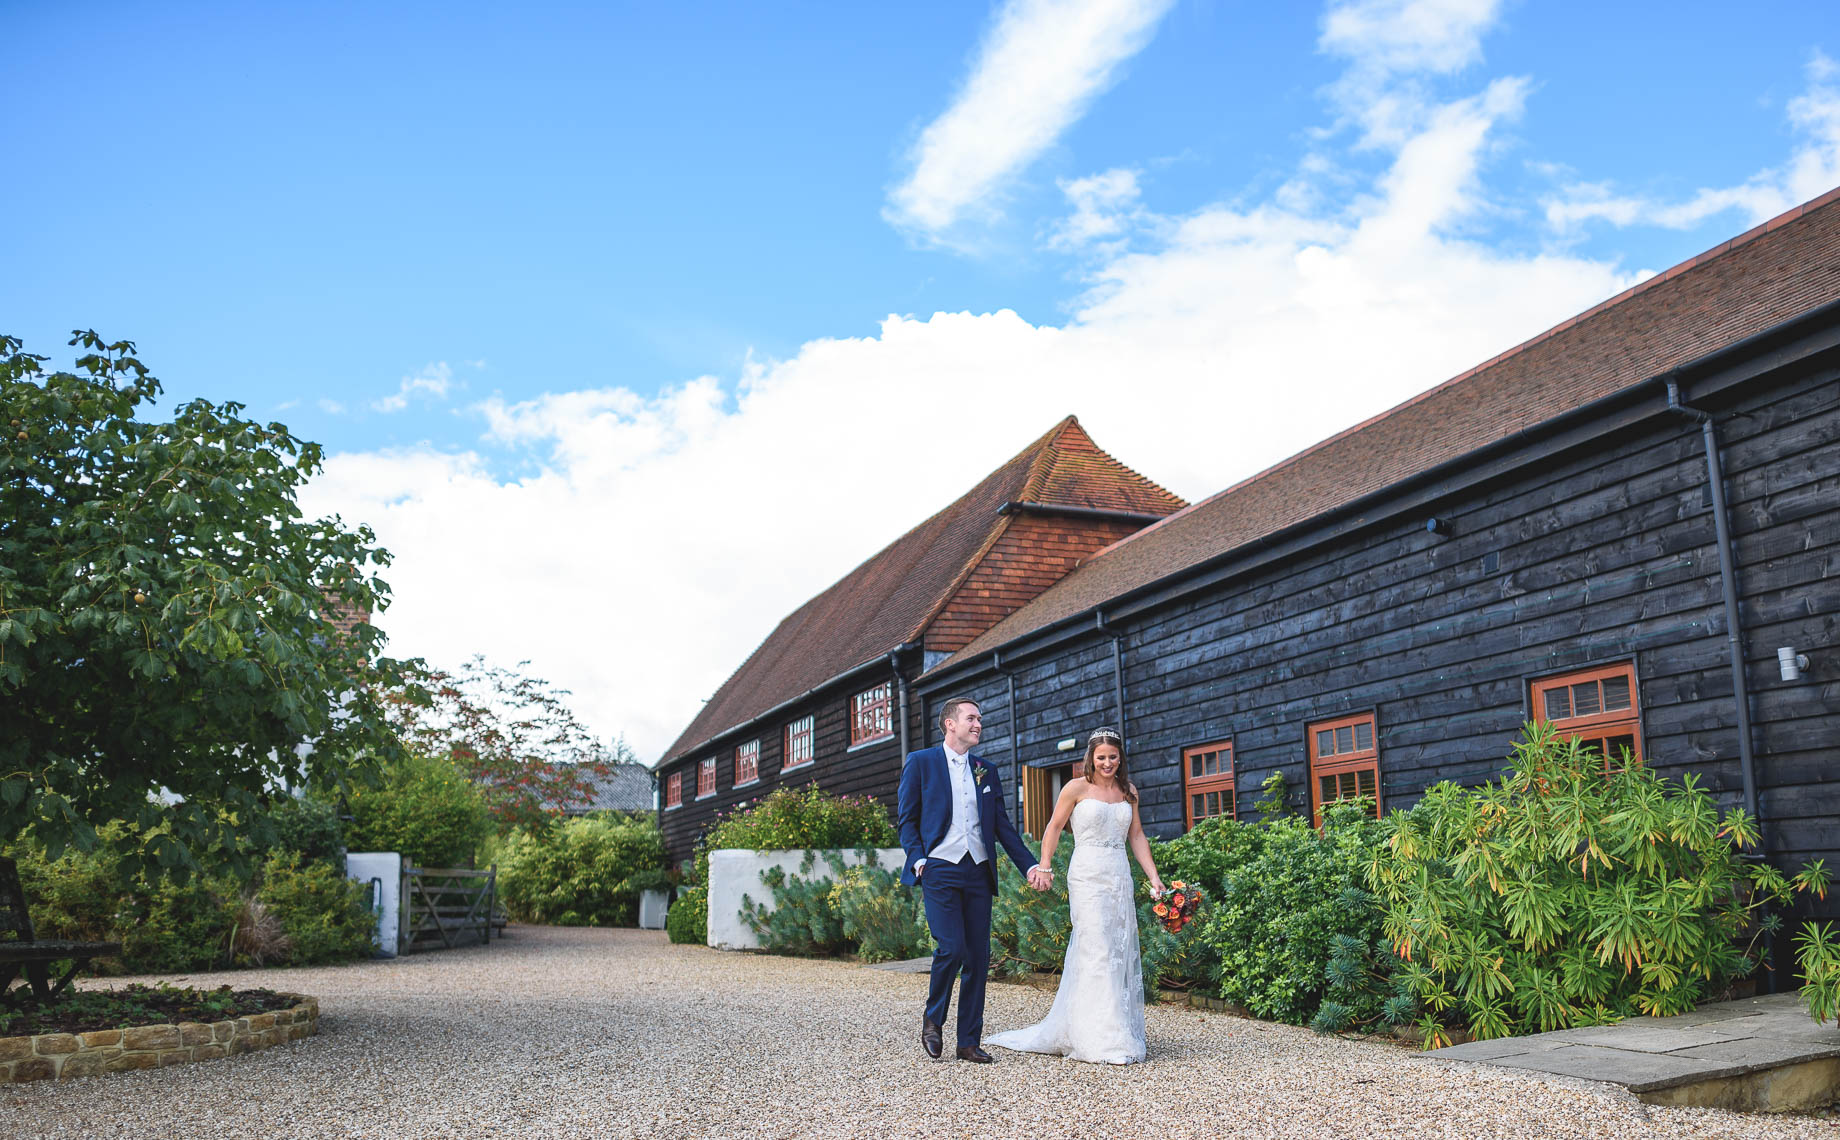 Gate Street Barn wedding photography - Guy Collier - Claire and Andy (71 of 192)